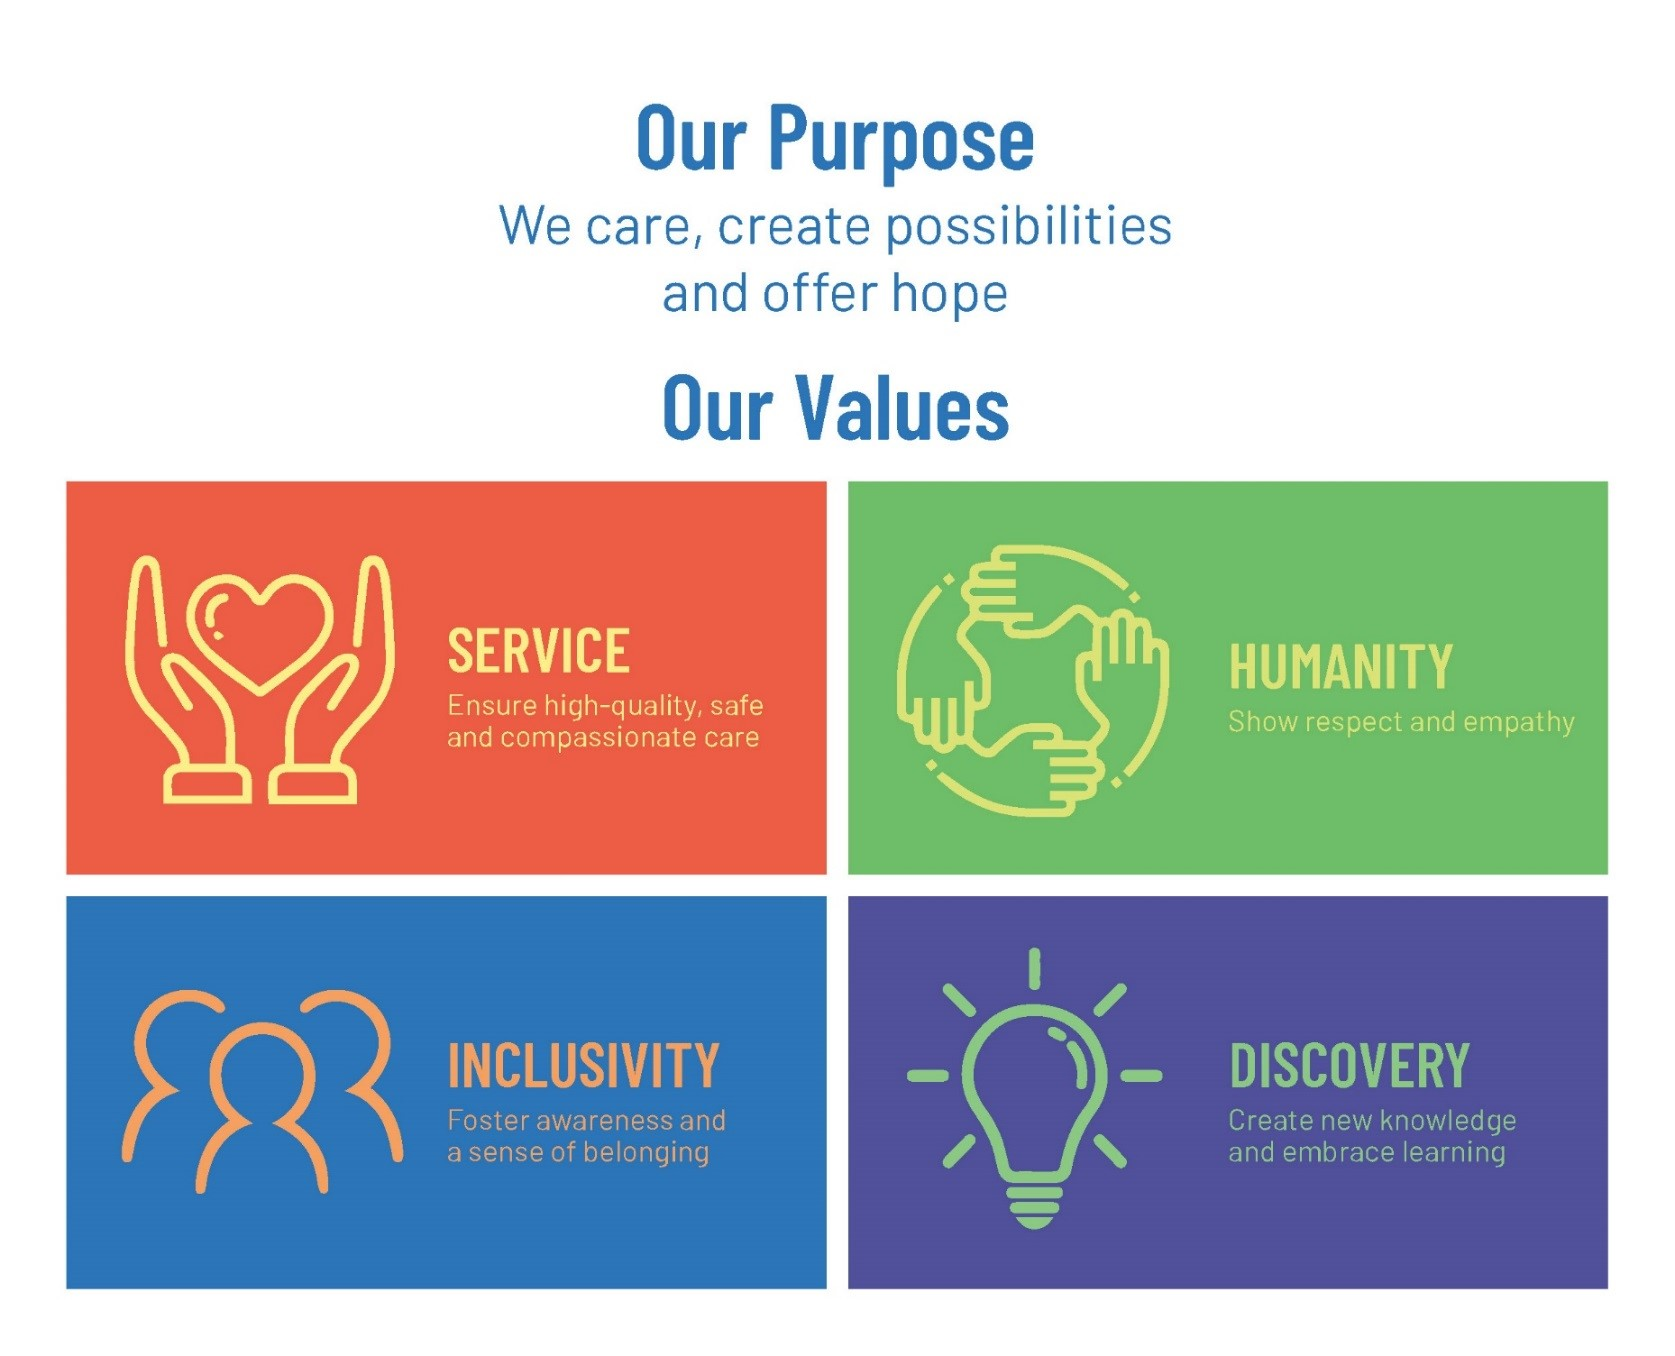 Our Purpose  - We care, create possibilities and offer hope and Our Values - Service, Humanity, Inclusivity and Discovery